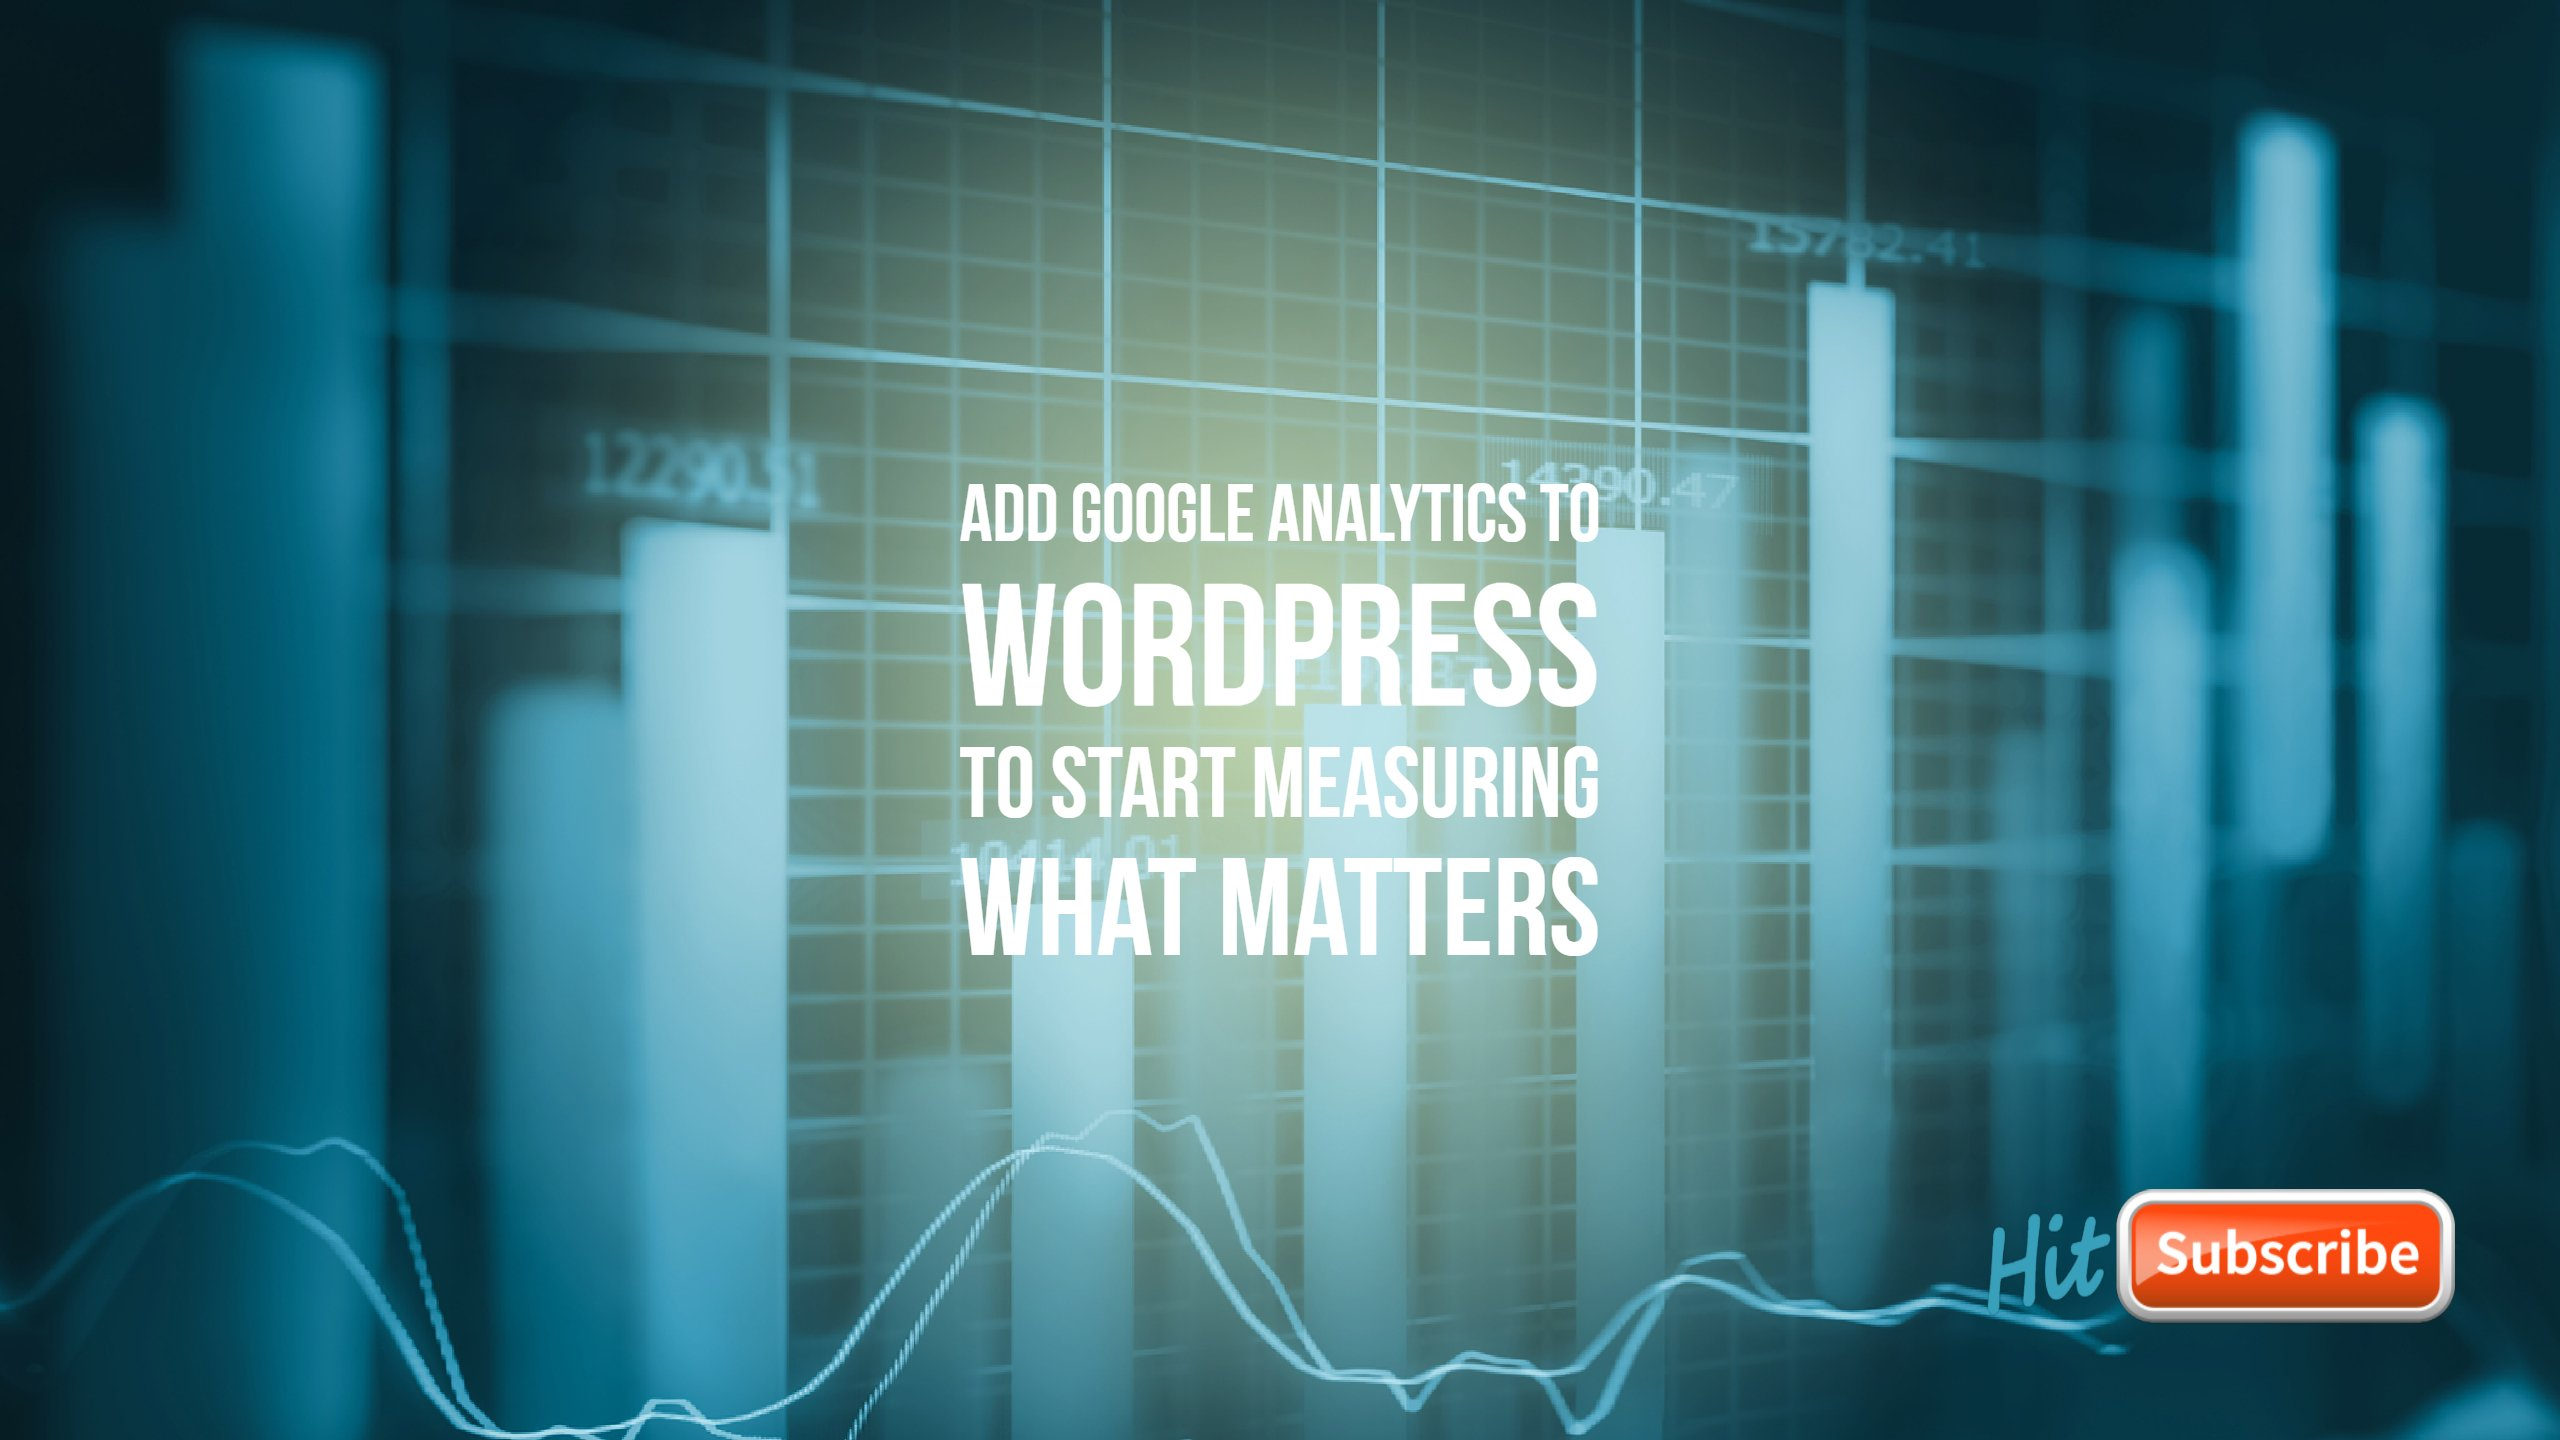 Add Google Analytics to WordPress to Start Measuring What Matters